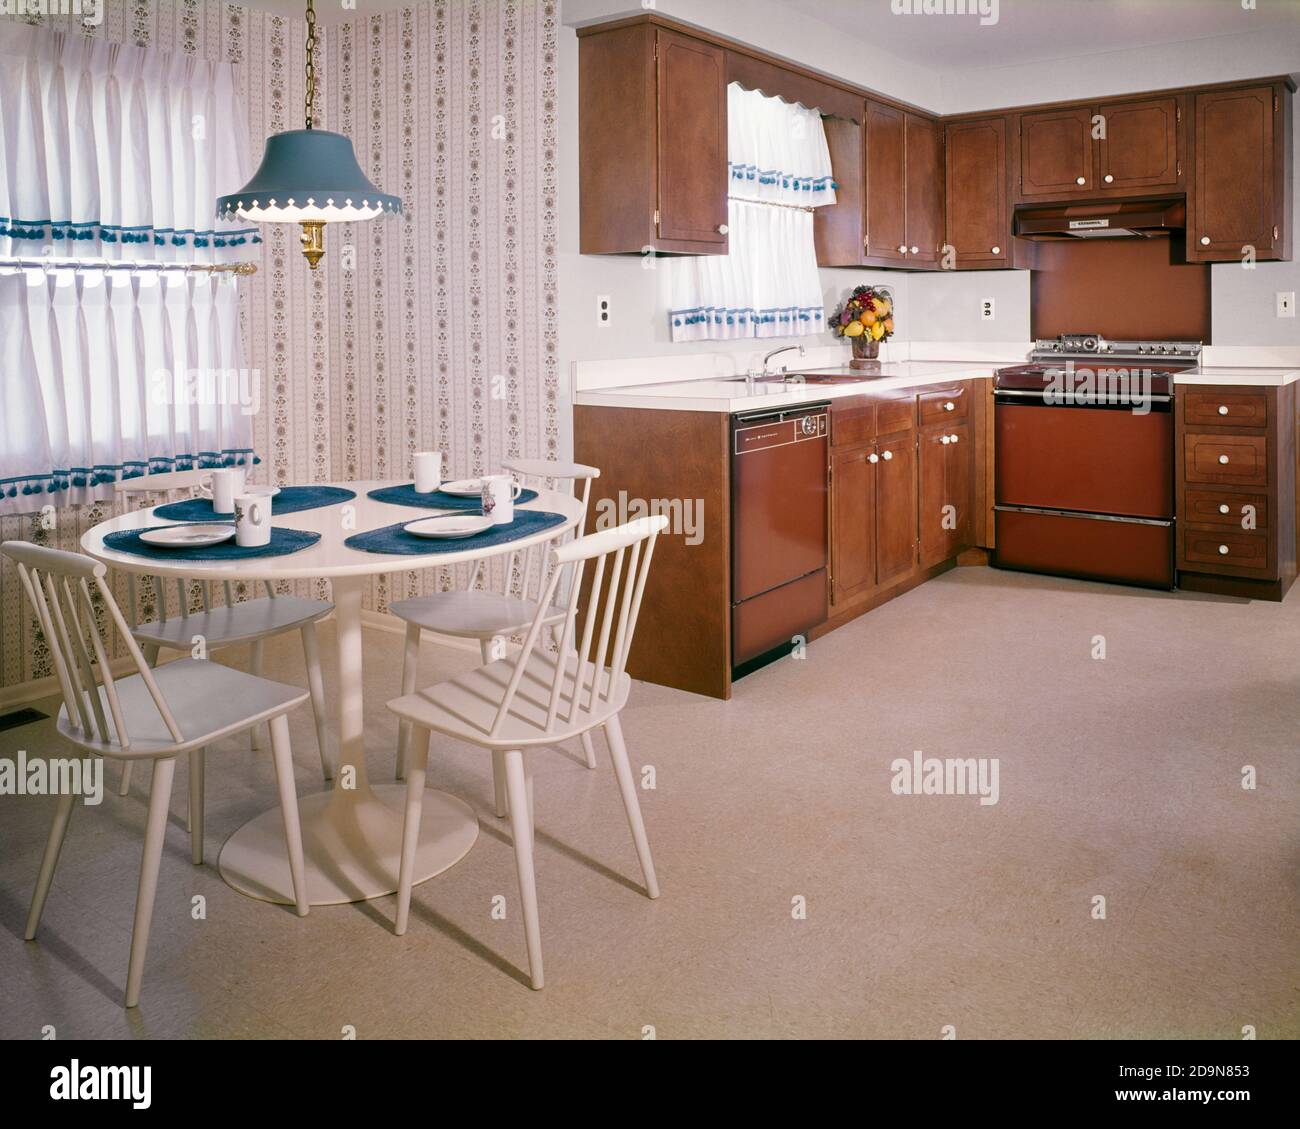 1960s Decor High Resolution Stock Photography And Images Alamy